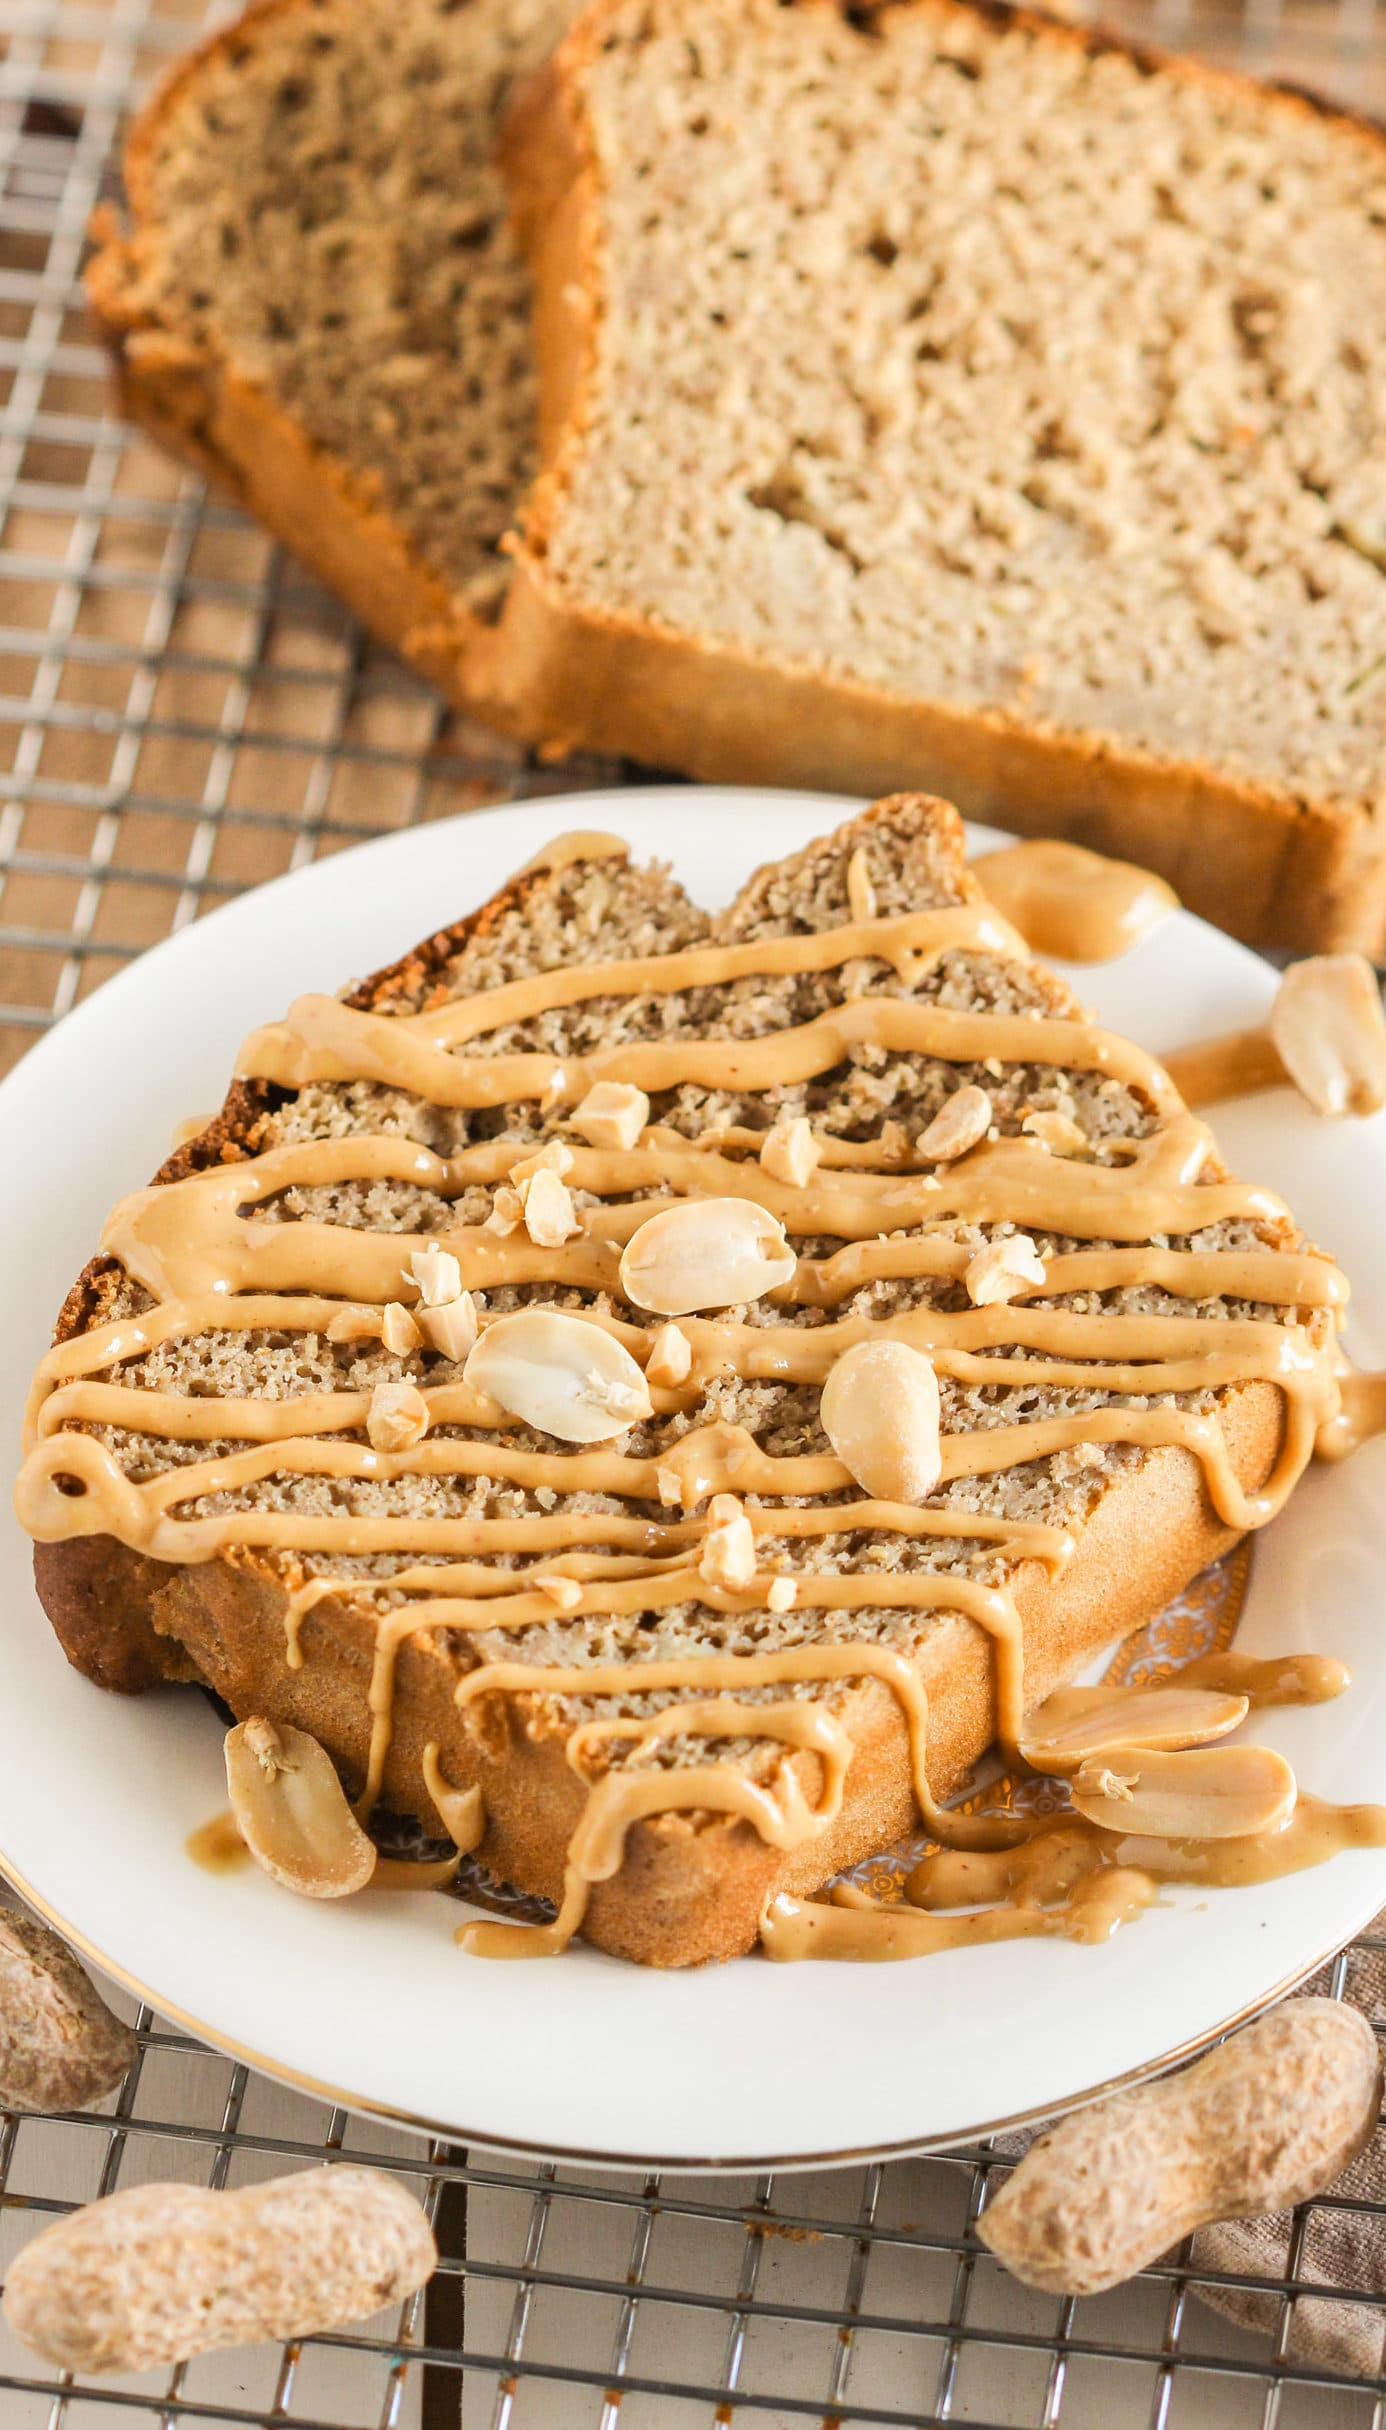 Healthy Peanut Butter Banana Bread Recipe | Desserts with ...